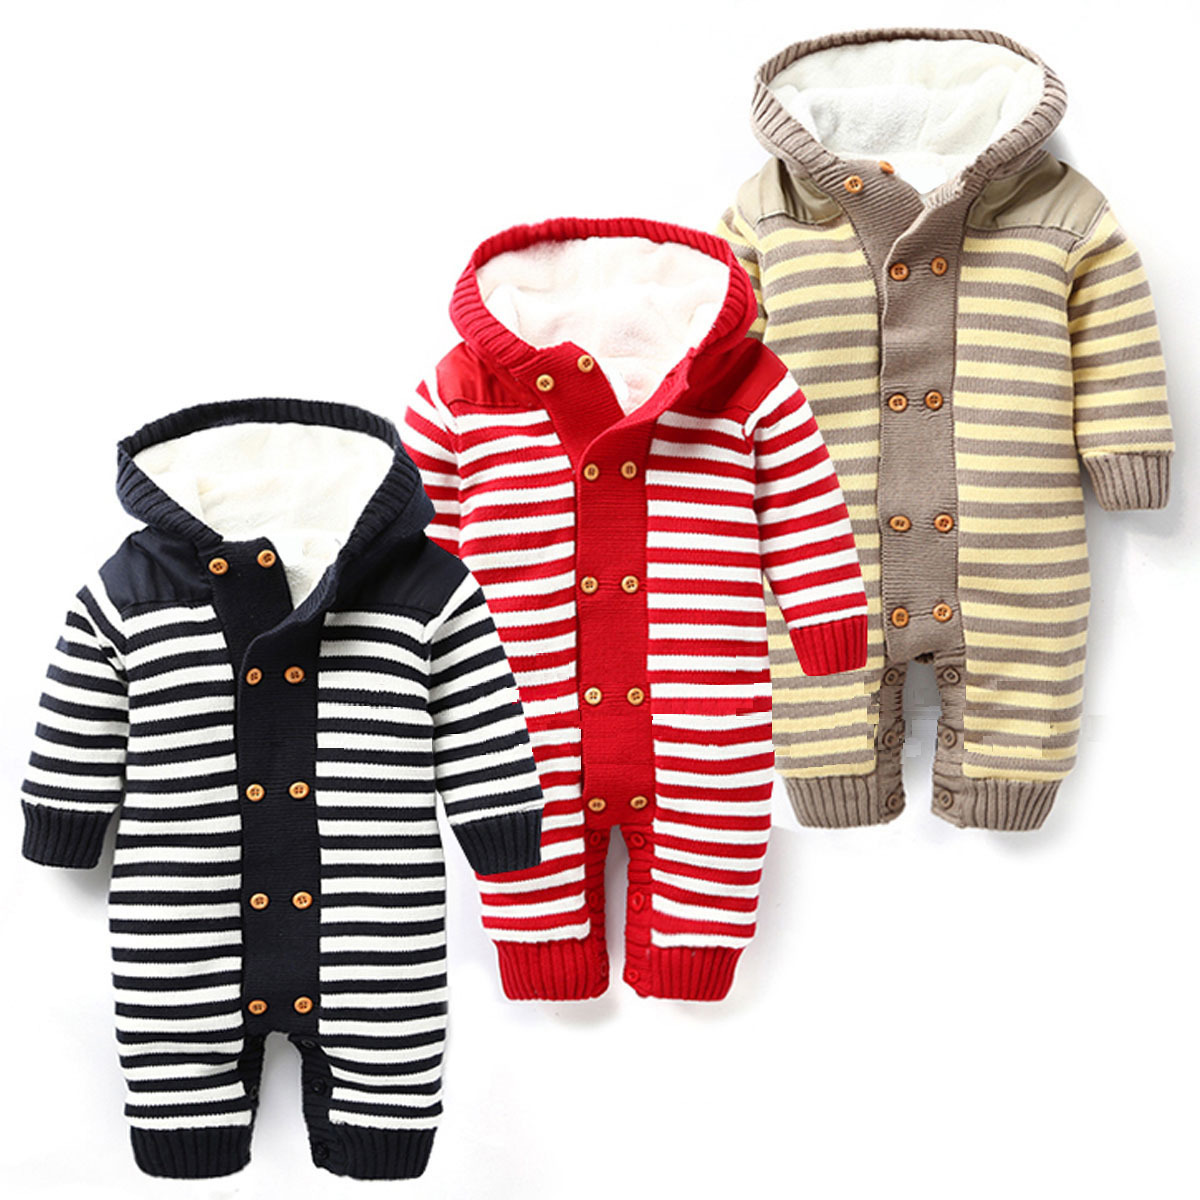 Newborn Autumn Winter Baby Rompers Thickened Winter Striped Hooded Knitted Sweater Warm Overalls Fleece Coat For Baby Girl Boy fashion woman s striped beanies hat 2016 new autumn winter knitted warm wool casual girl cap for woman skullies chapeu feminino